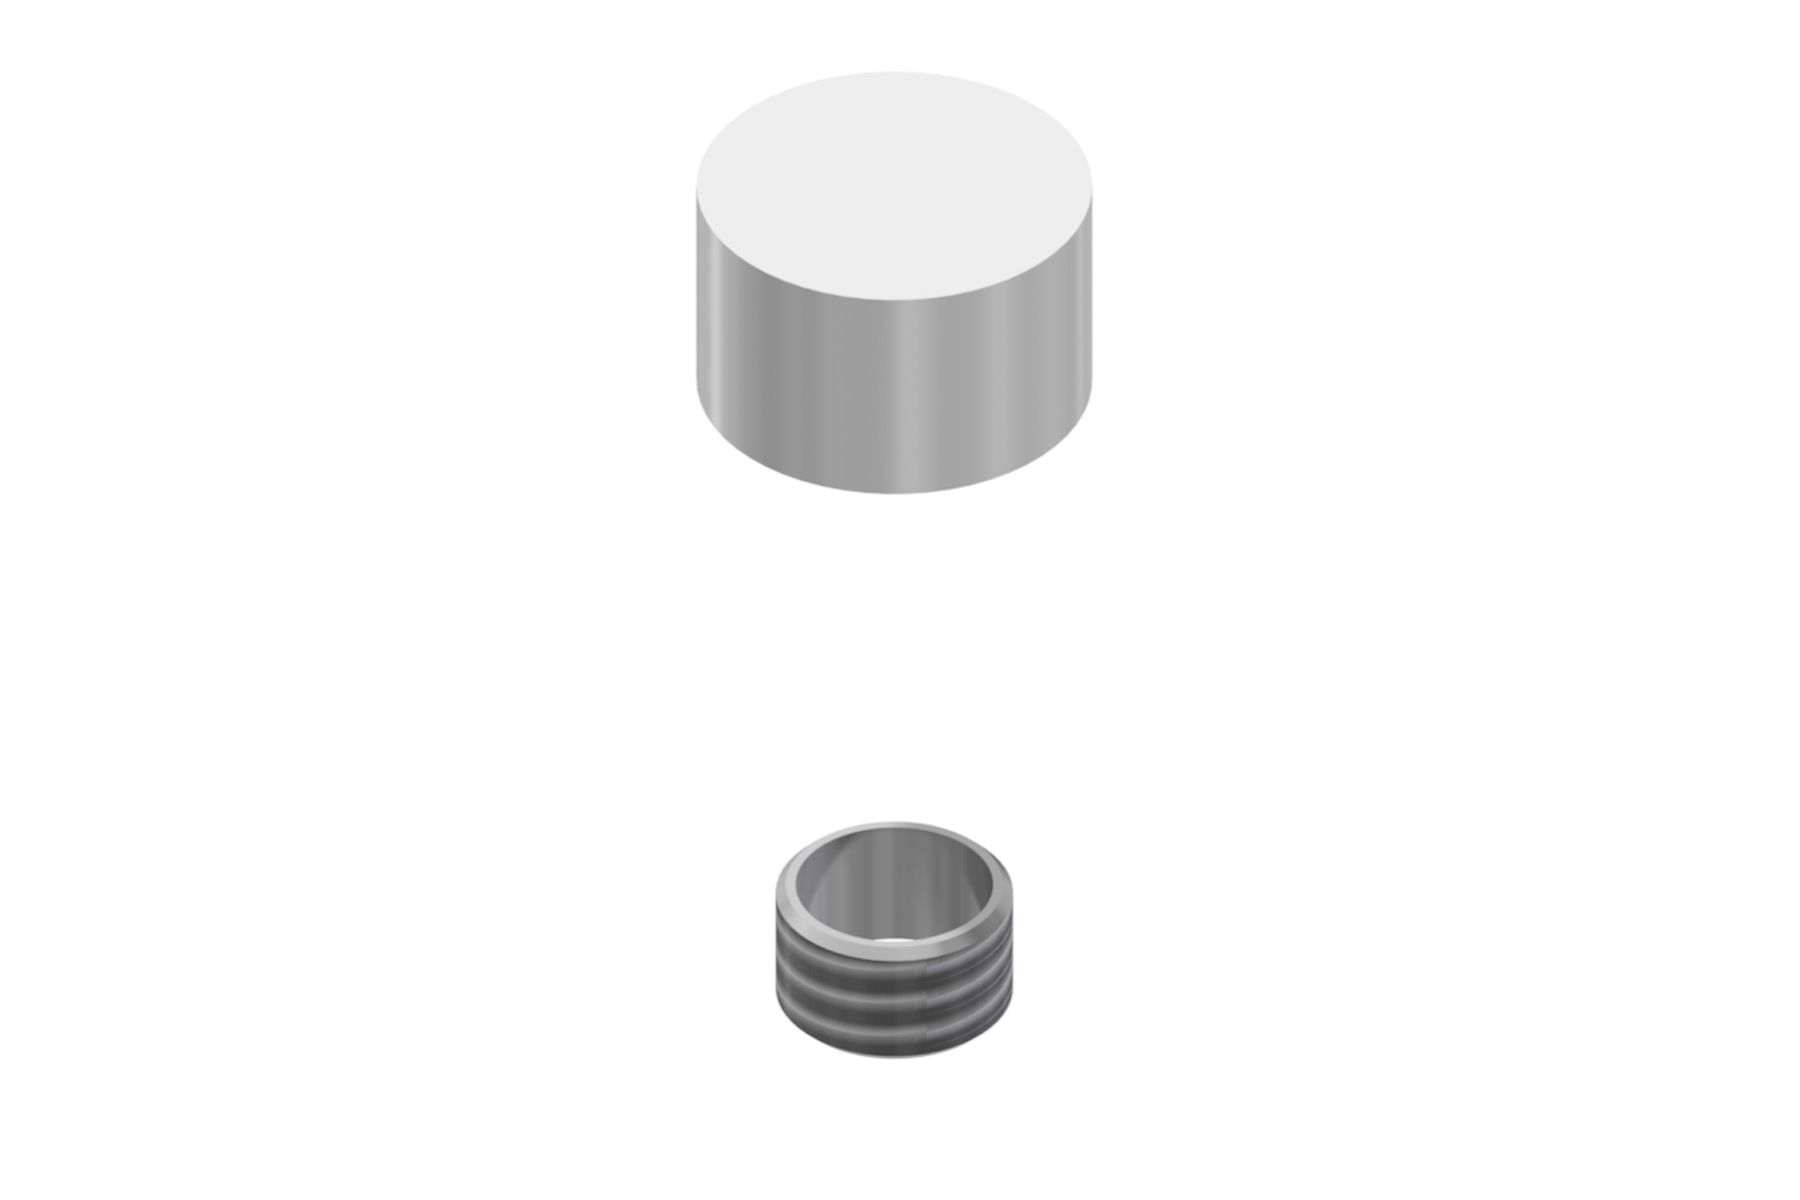 Flush Mount Screw Cap (10mm diameter)